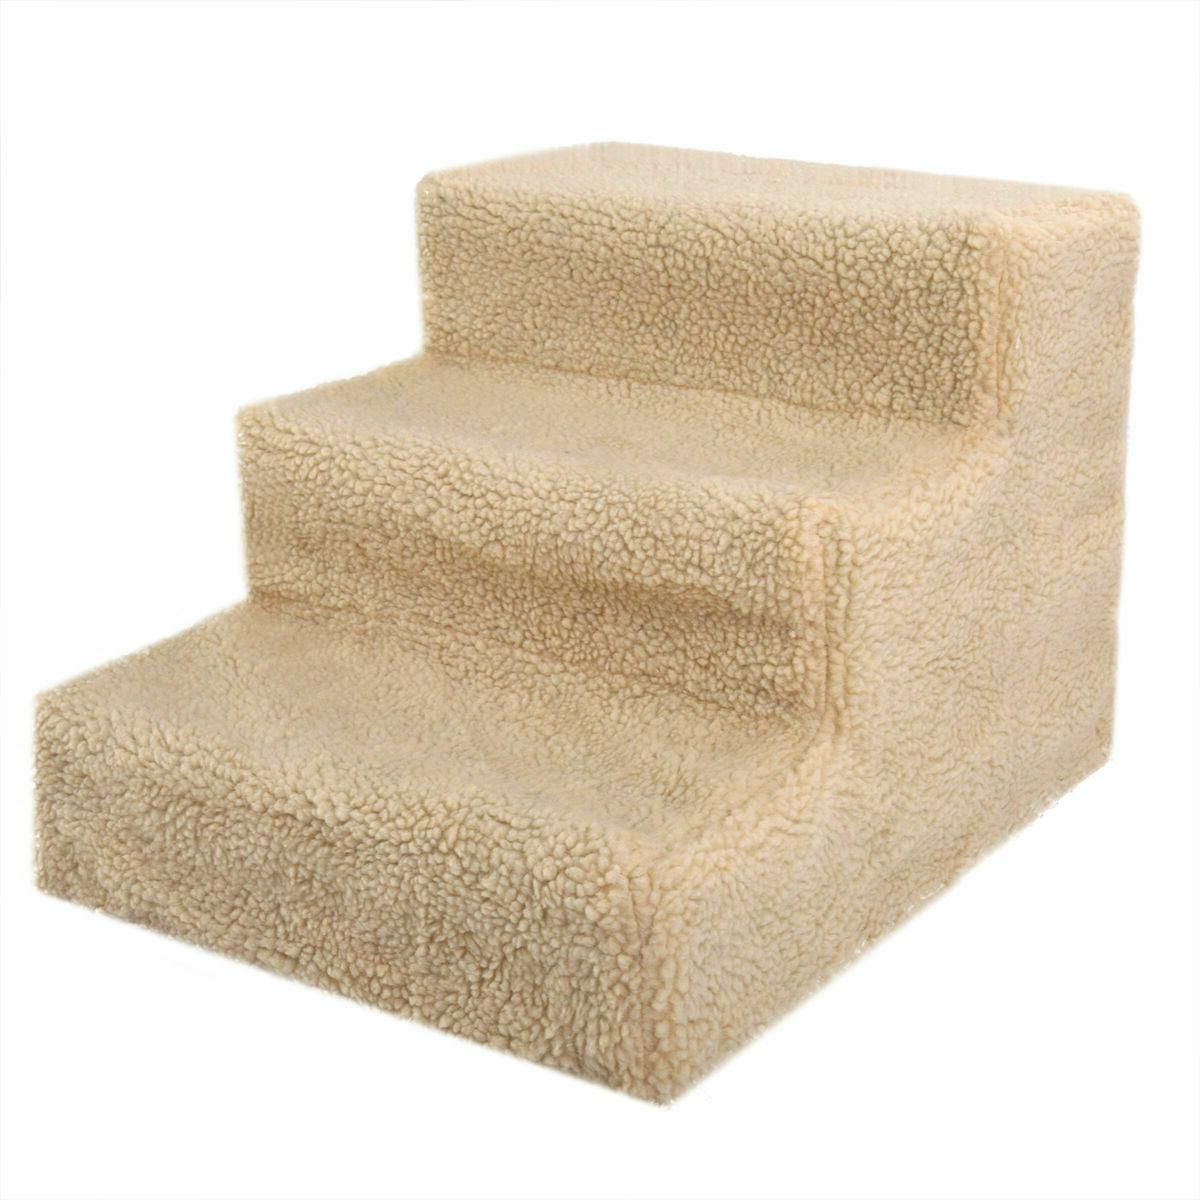 Beige Steps Indoor Ramp Portable Dog with Washable